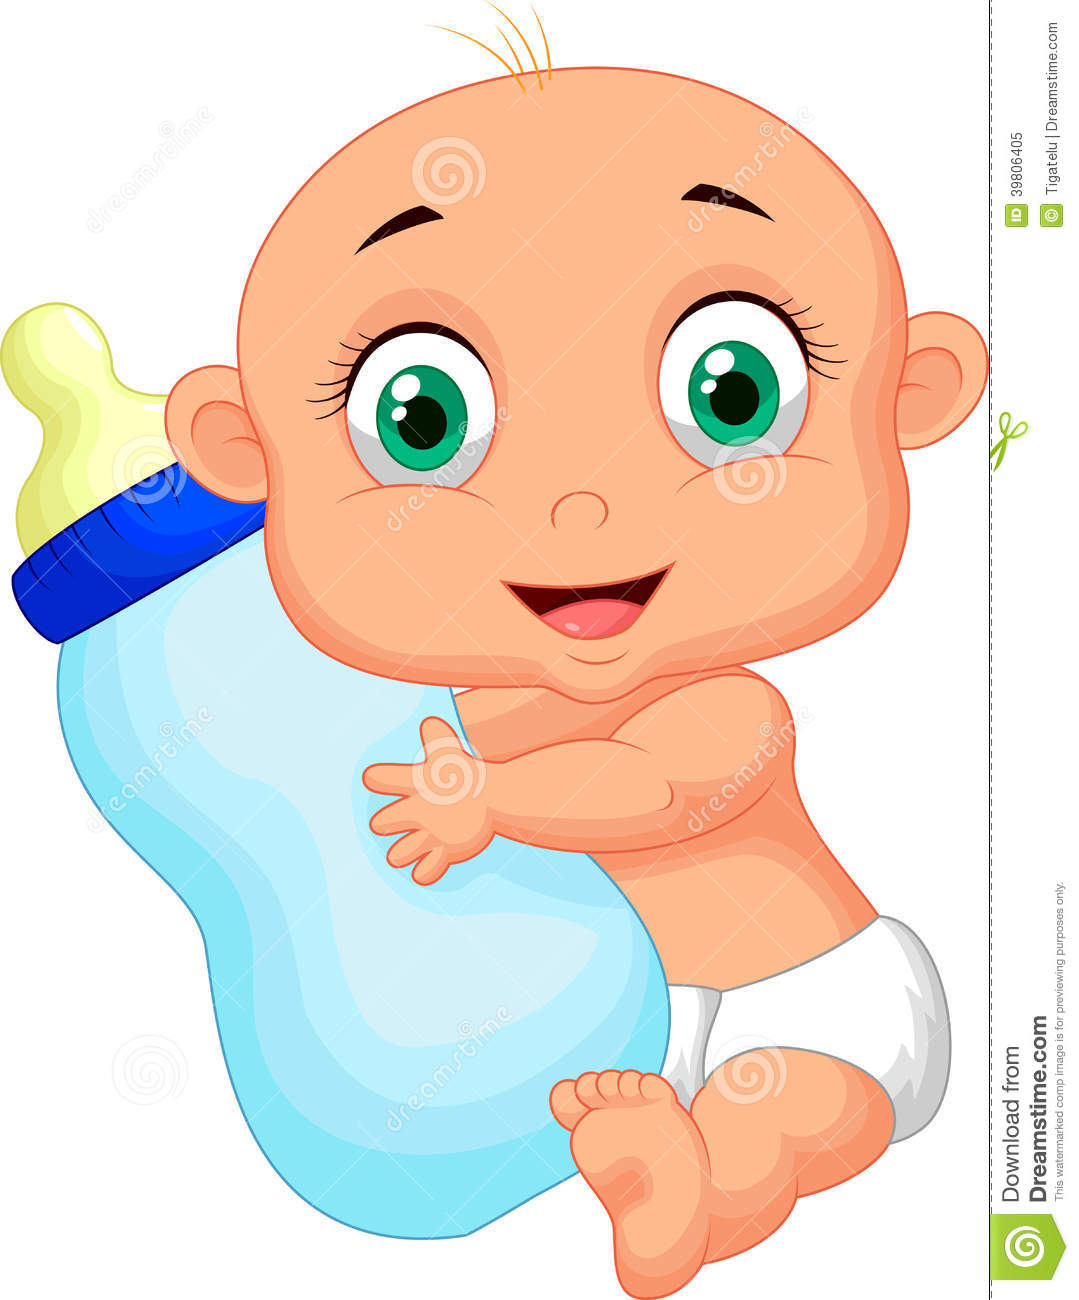 Cute baby cartoon holding milk bottle stock vector illustration of cute baby cartoon holding milk bottle voltagebd Image collections